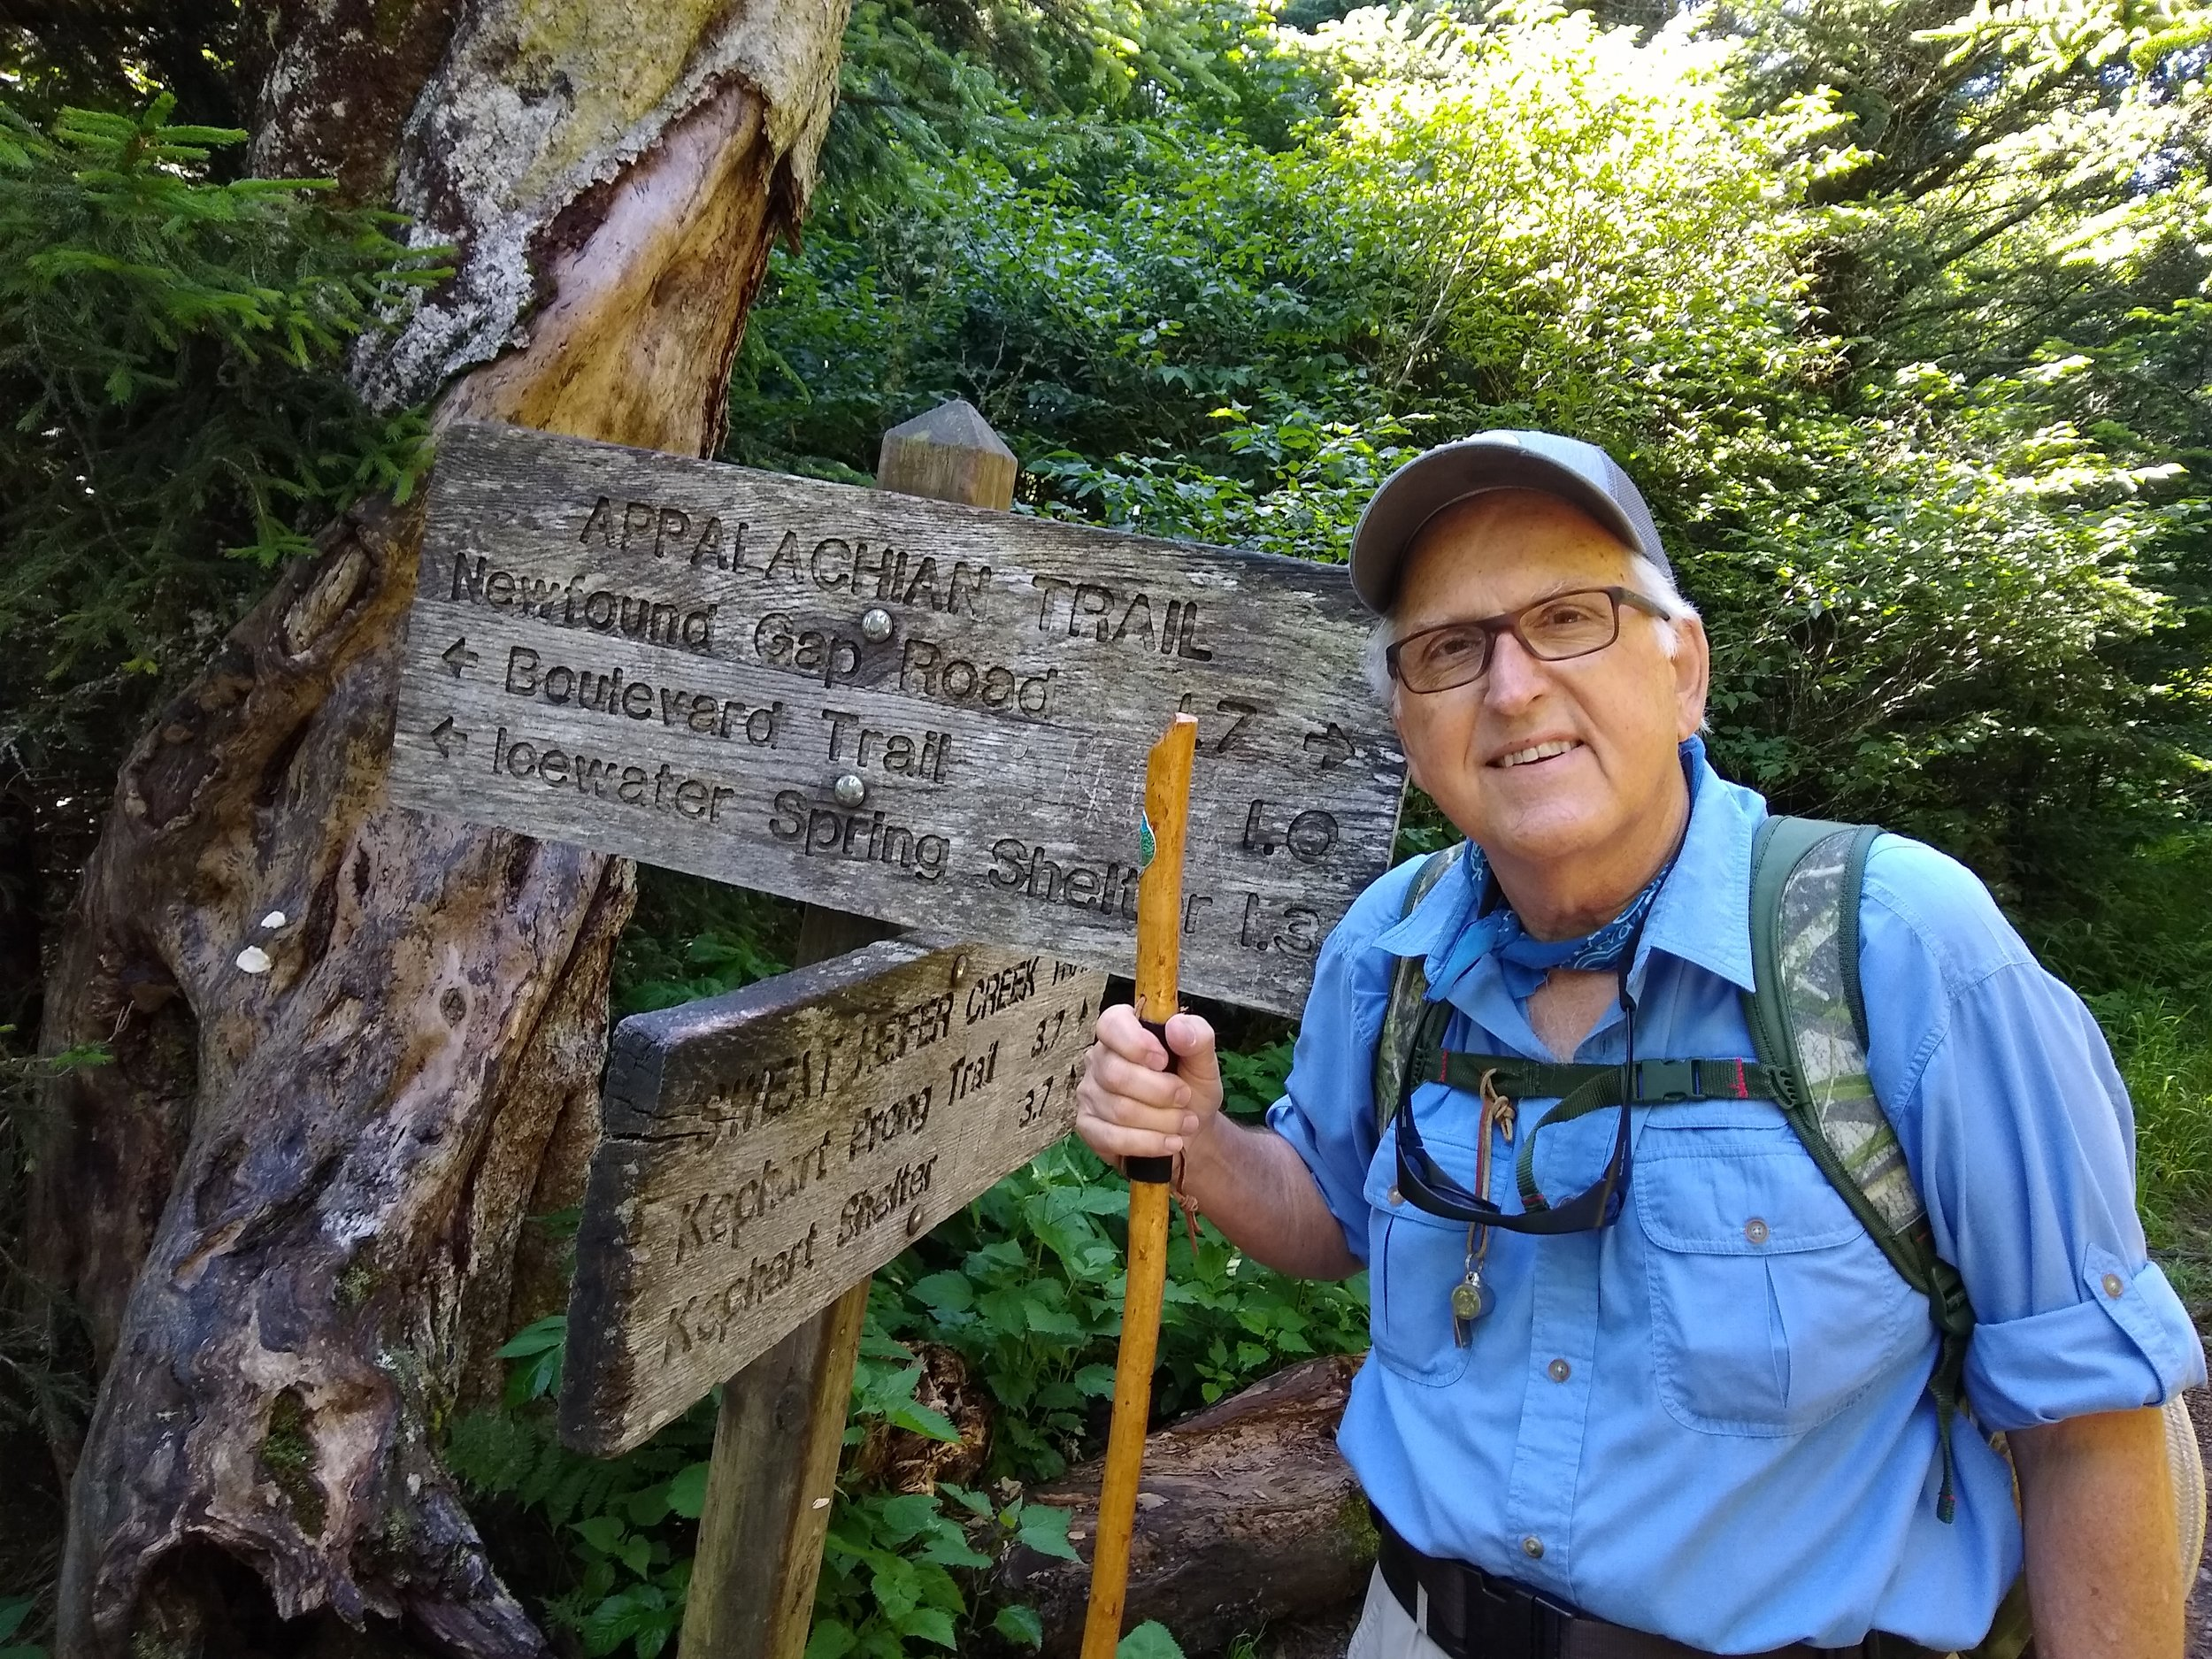 Starting my hike to Mt. LeConte via the Appalachian Trail.